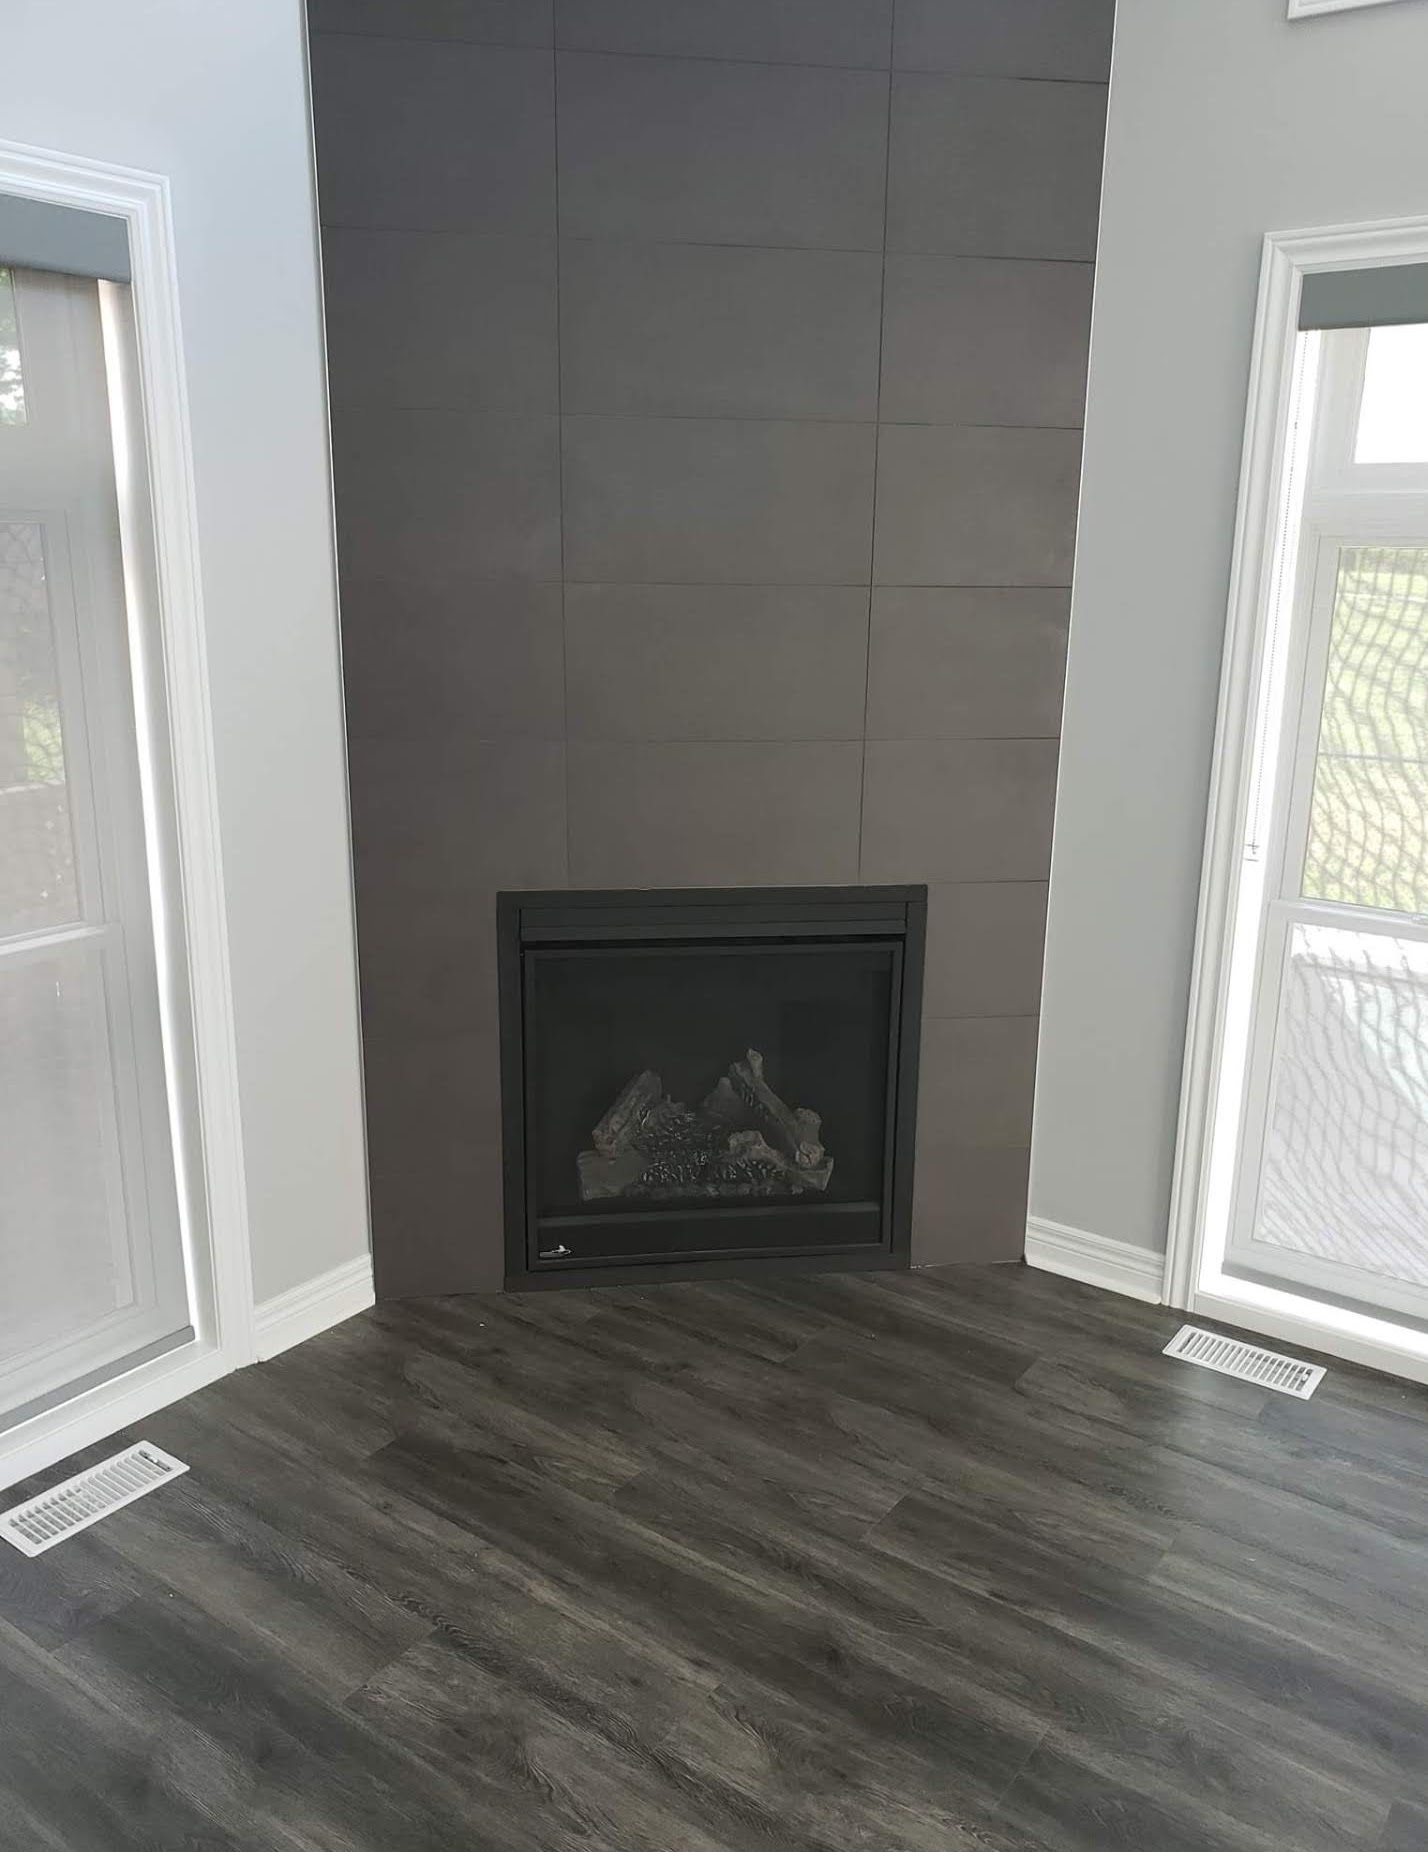 New Fireplace installed in a renovation